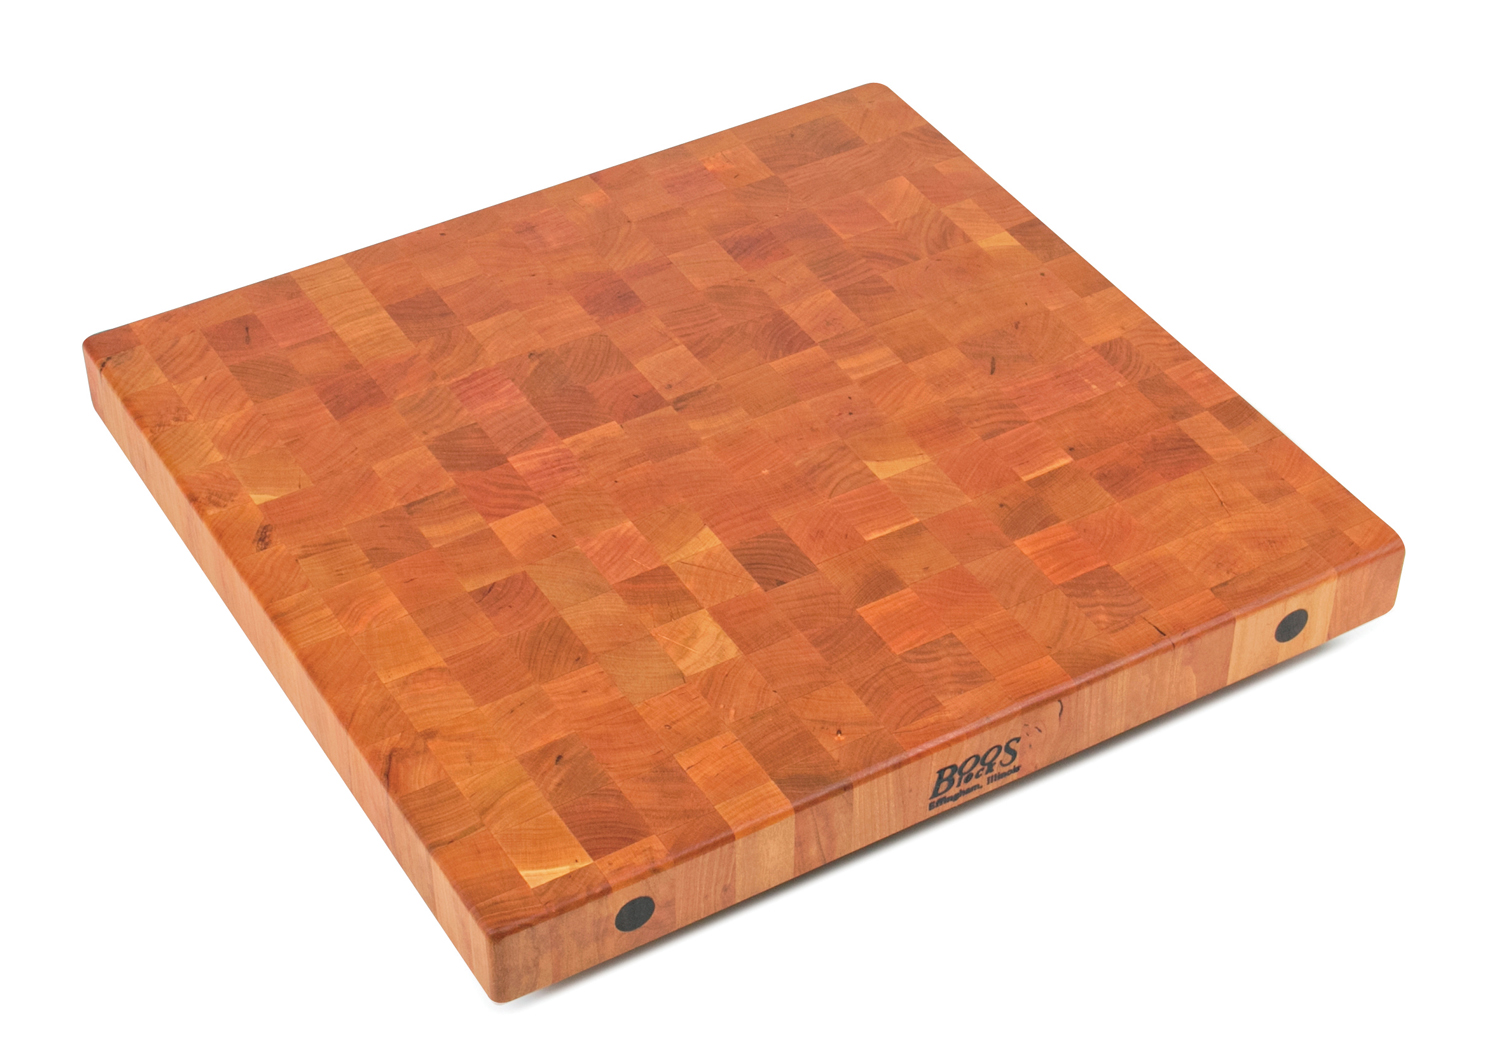 4 inch thick cherry end grain butcher block countertop 25 inches wide